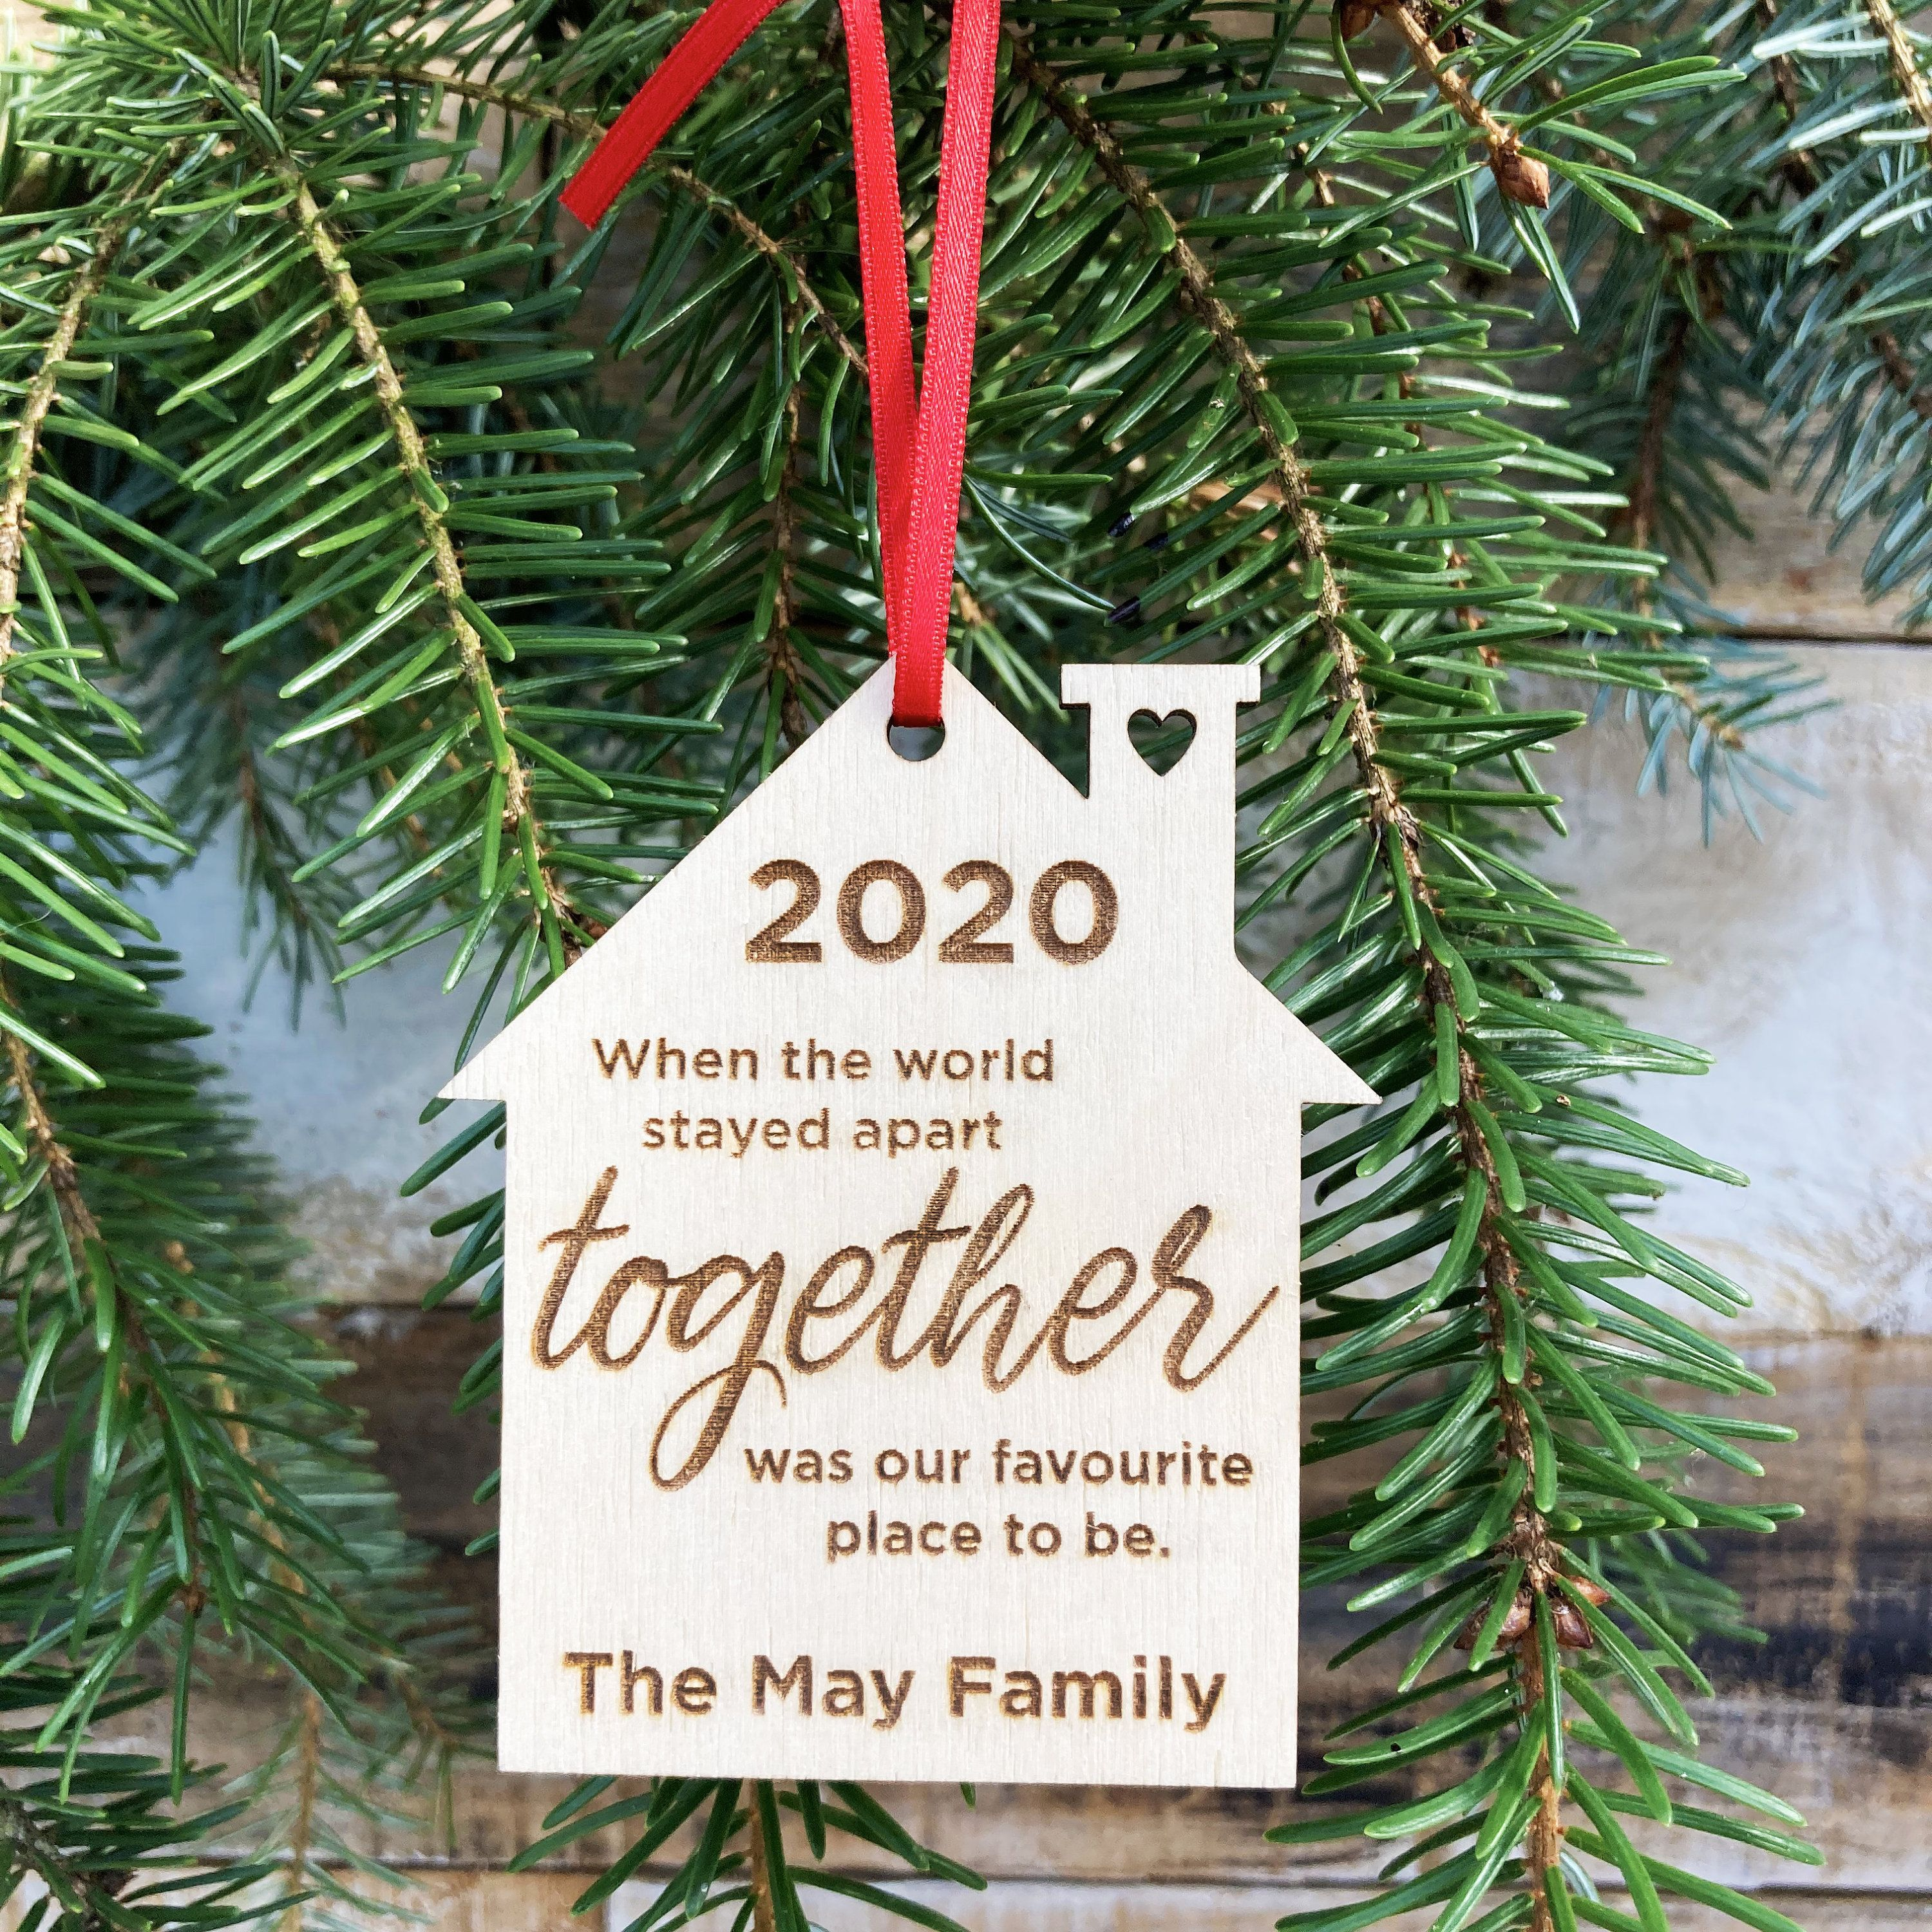 2020 Christmas Tree Decoration Personalised Wooden Etsy In 2020 Wooden Christmas Decorations Christmas Tree Decorations Tree Decorations